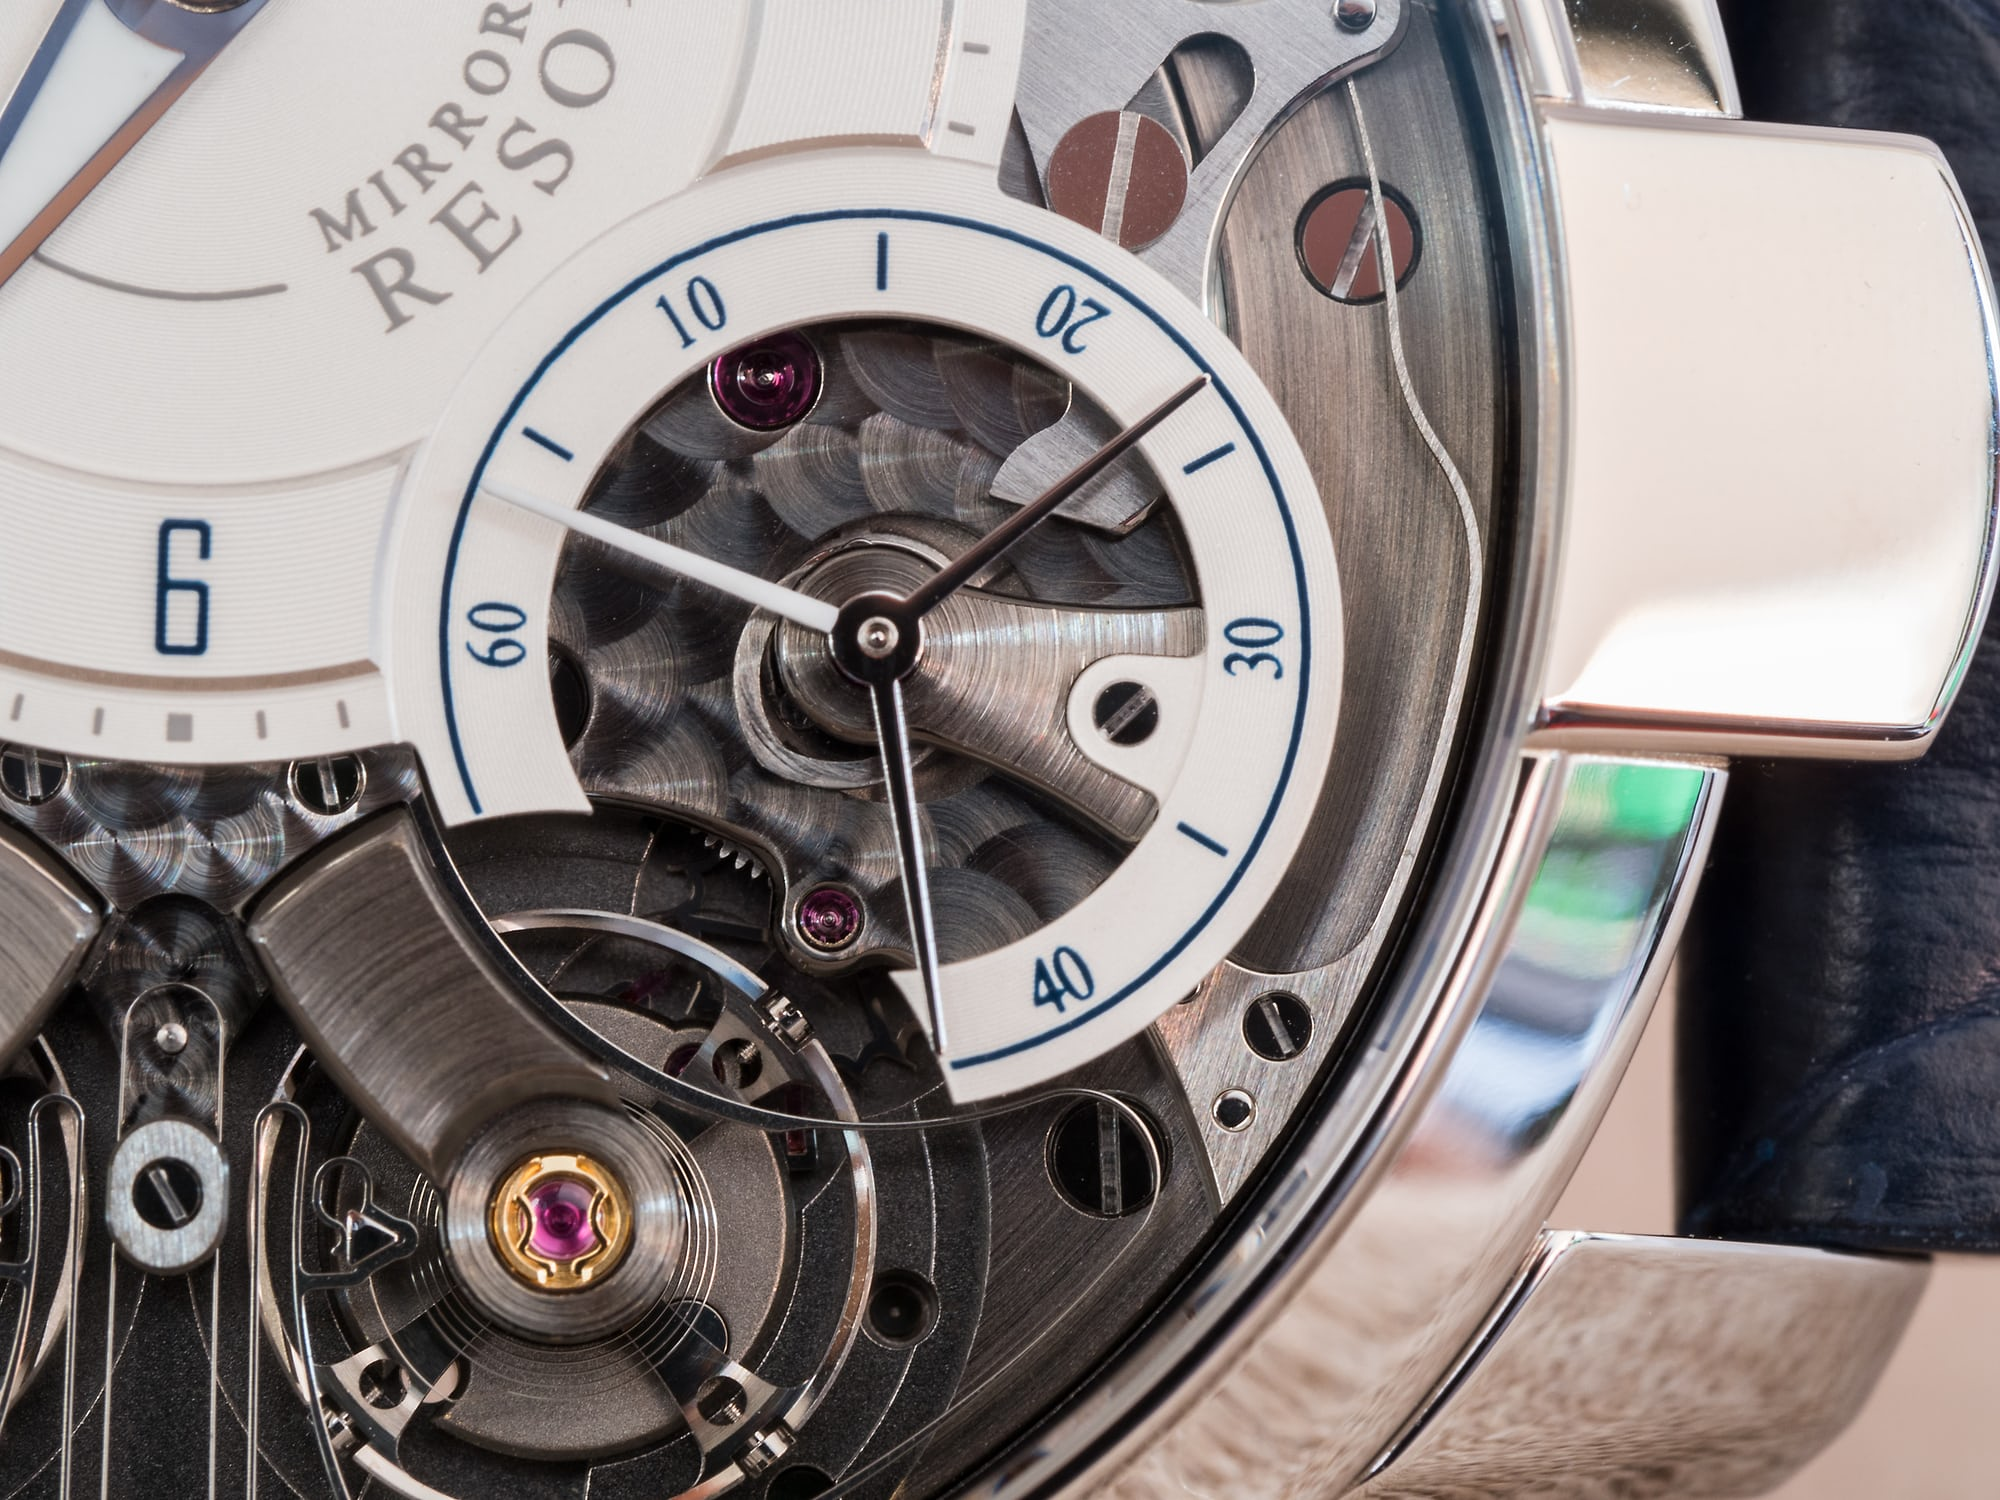 Armin Strom Mirrored Force Resonance Water seconds subdial and reset mechanism